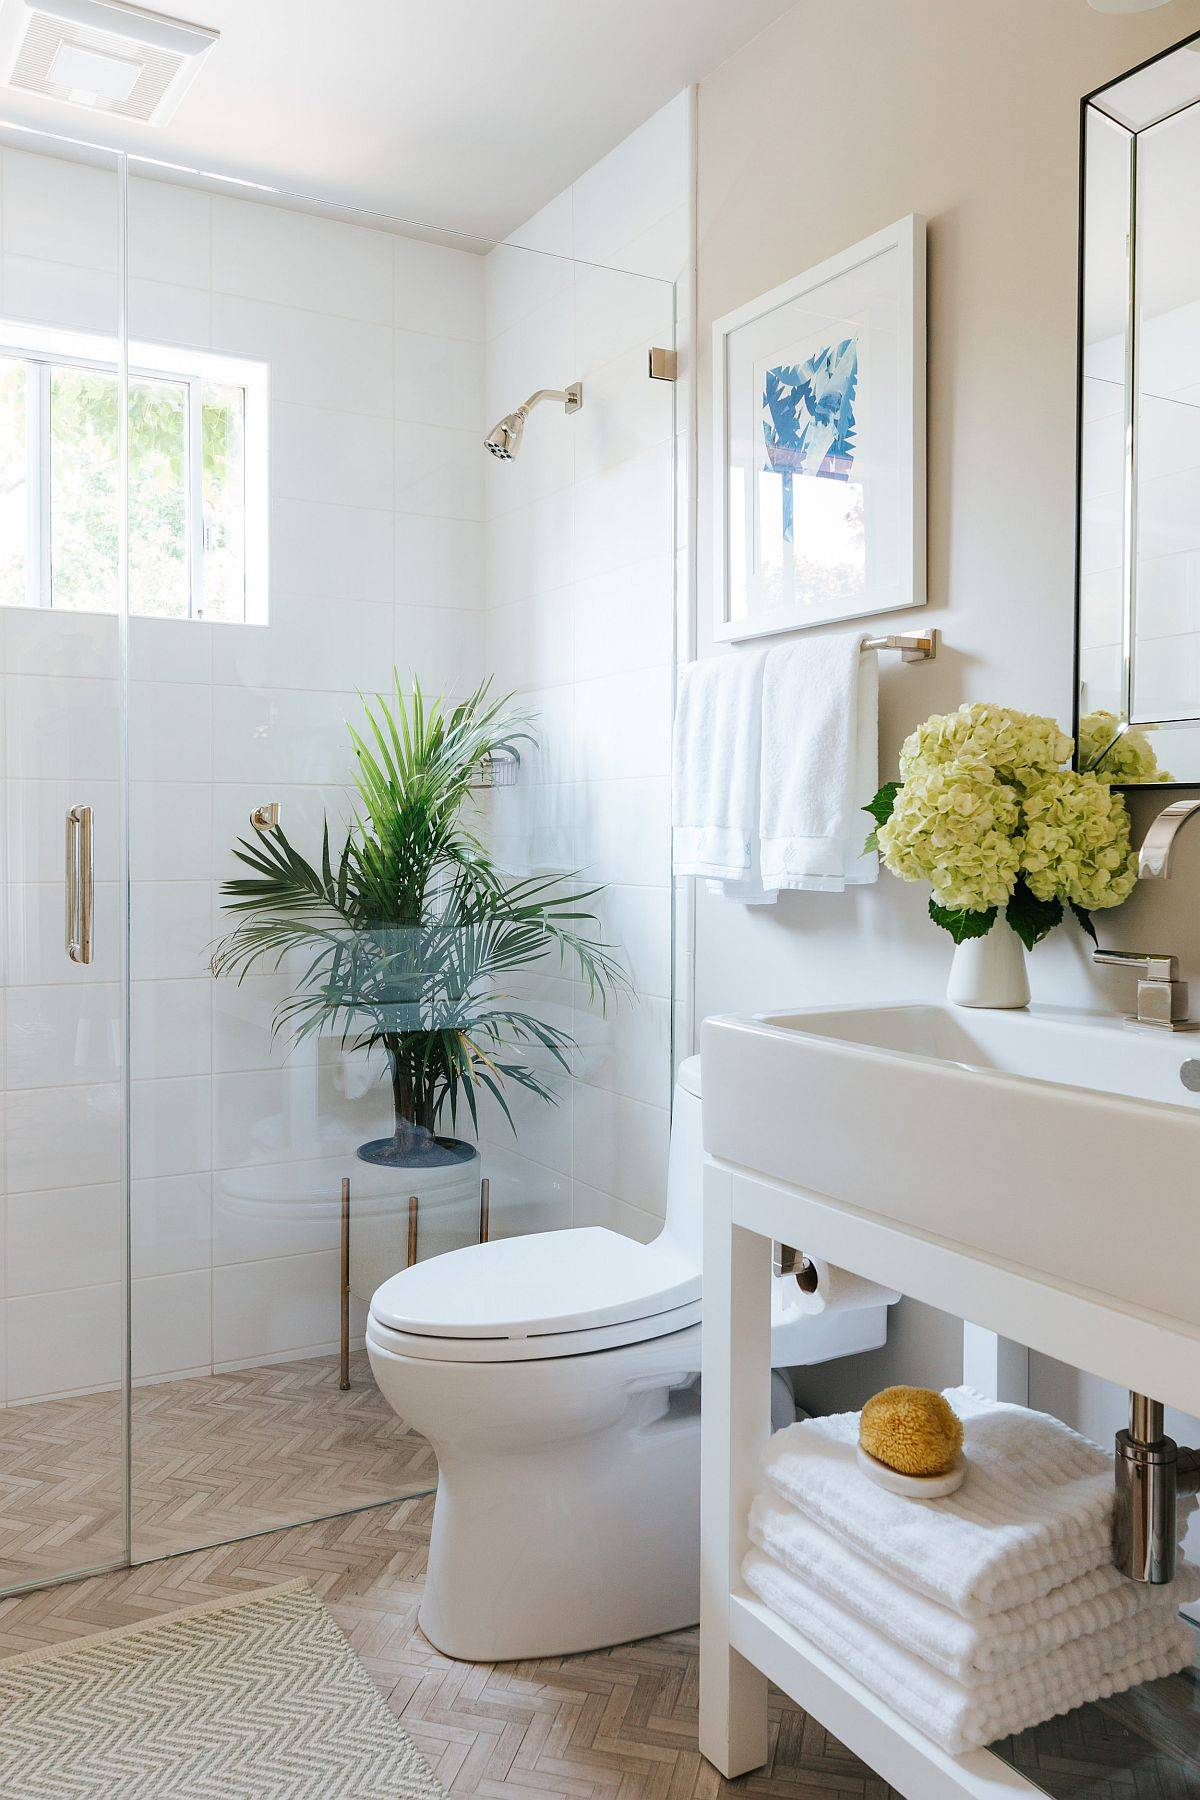 Small-white-bathroom-with-wall-in-beige-that-add-to-the-neutral-appeal-54662